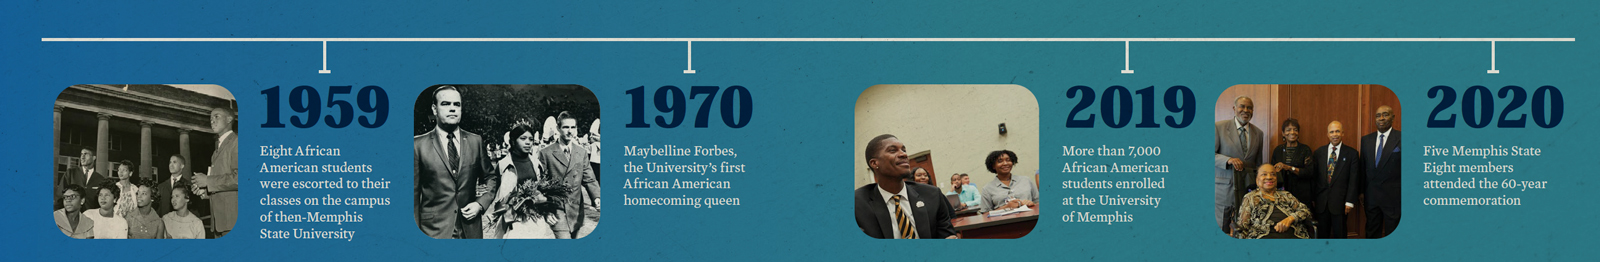 1959-Eight African American students were escorted to their classes on the campus of then-Memphis State University.1970-Maybelline Forbes, the University's first African American homecoming queen.2019-More than 7,000 African American students enrolled at the University of Memphis.2020-Five Memphis State Eight members attended the 60-year commemoration